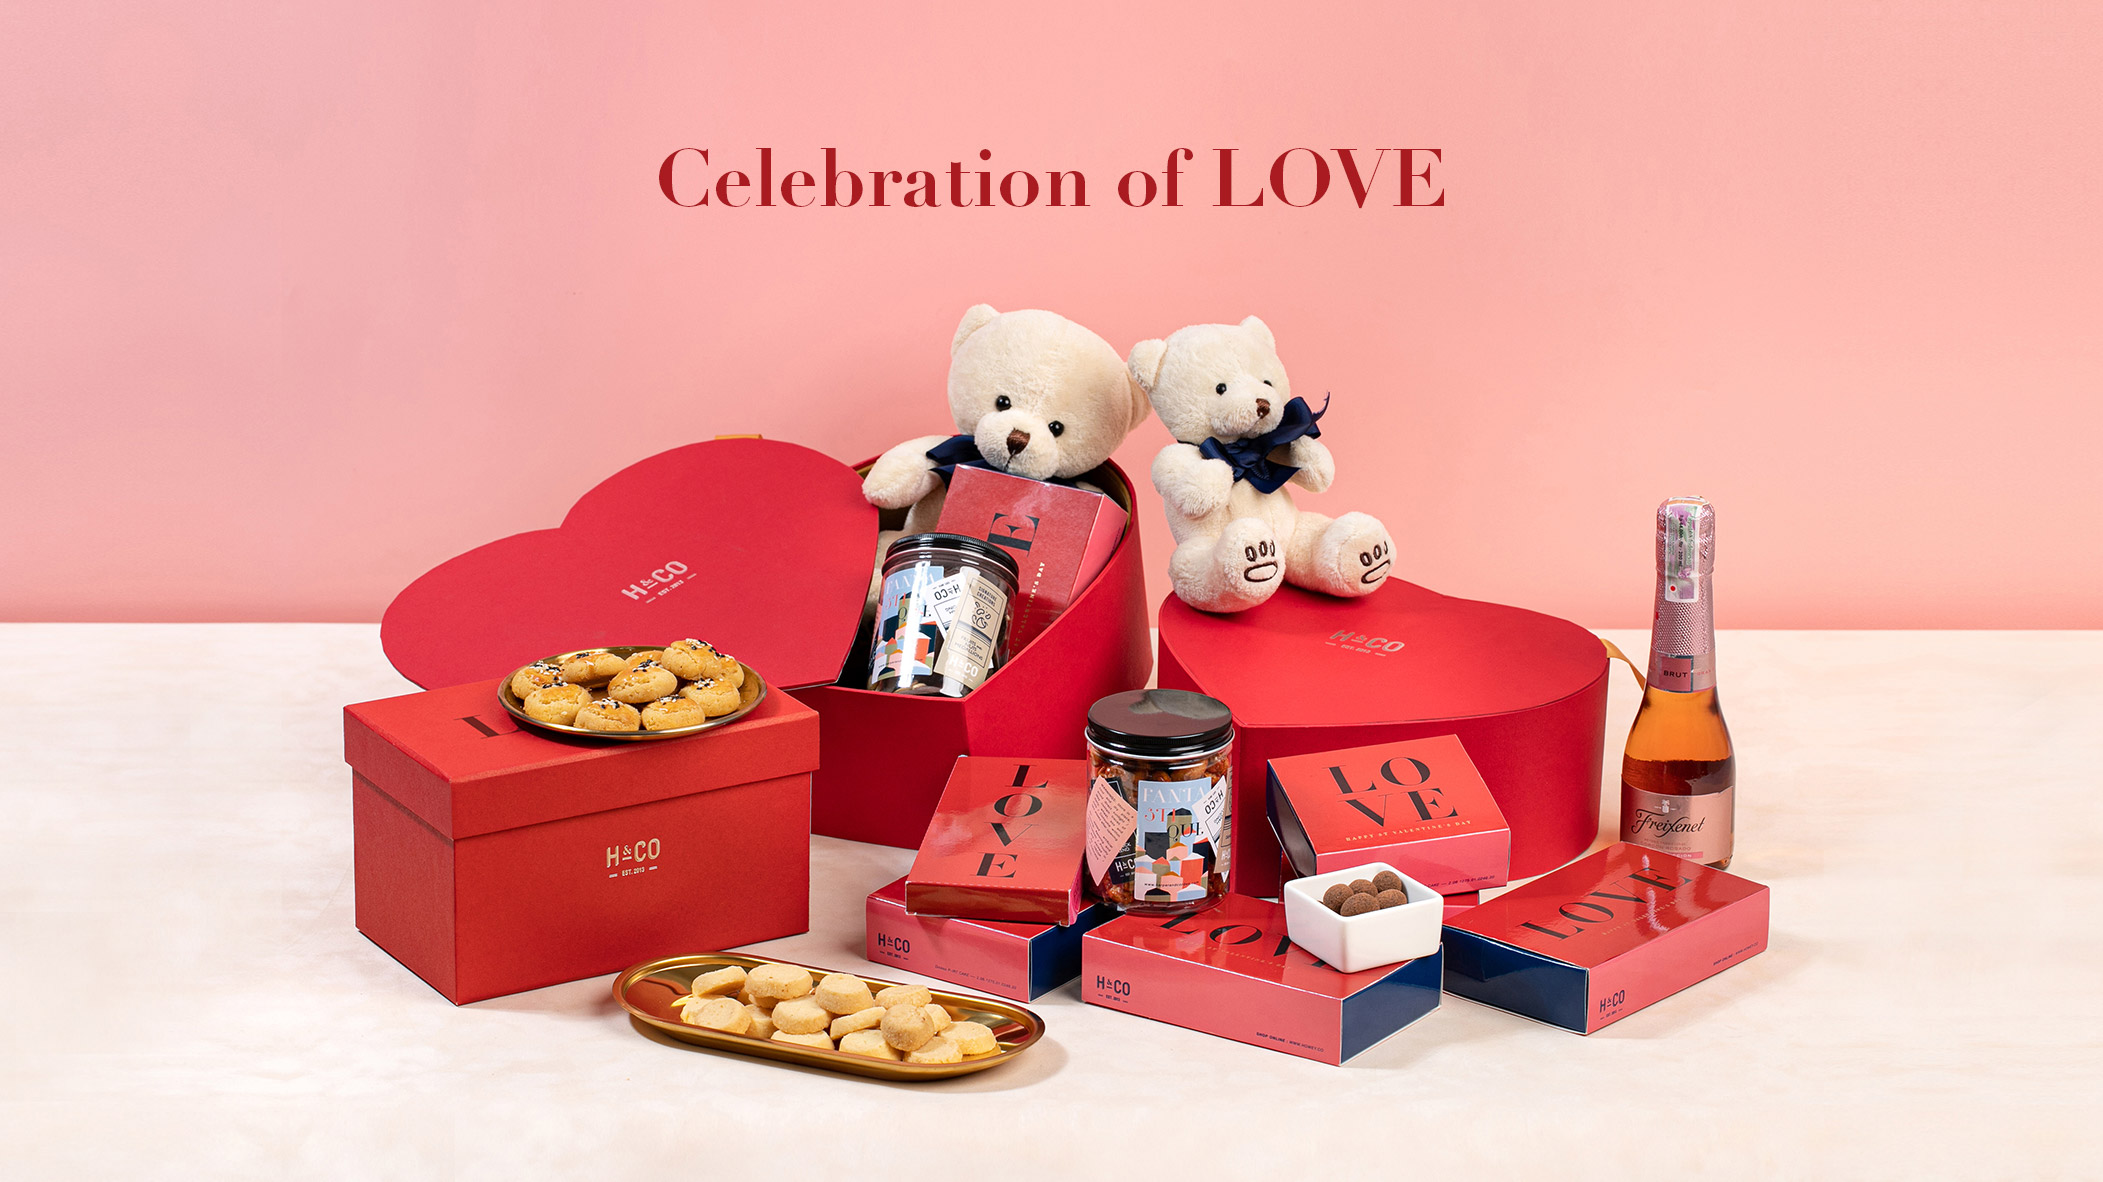 Celebration of LOVE with Harper & Cordon (2020 Valentine Collection) image